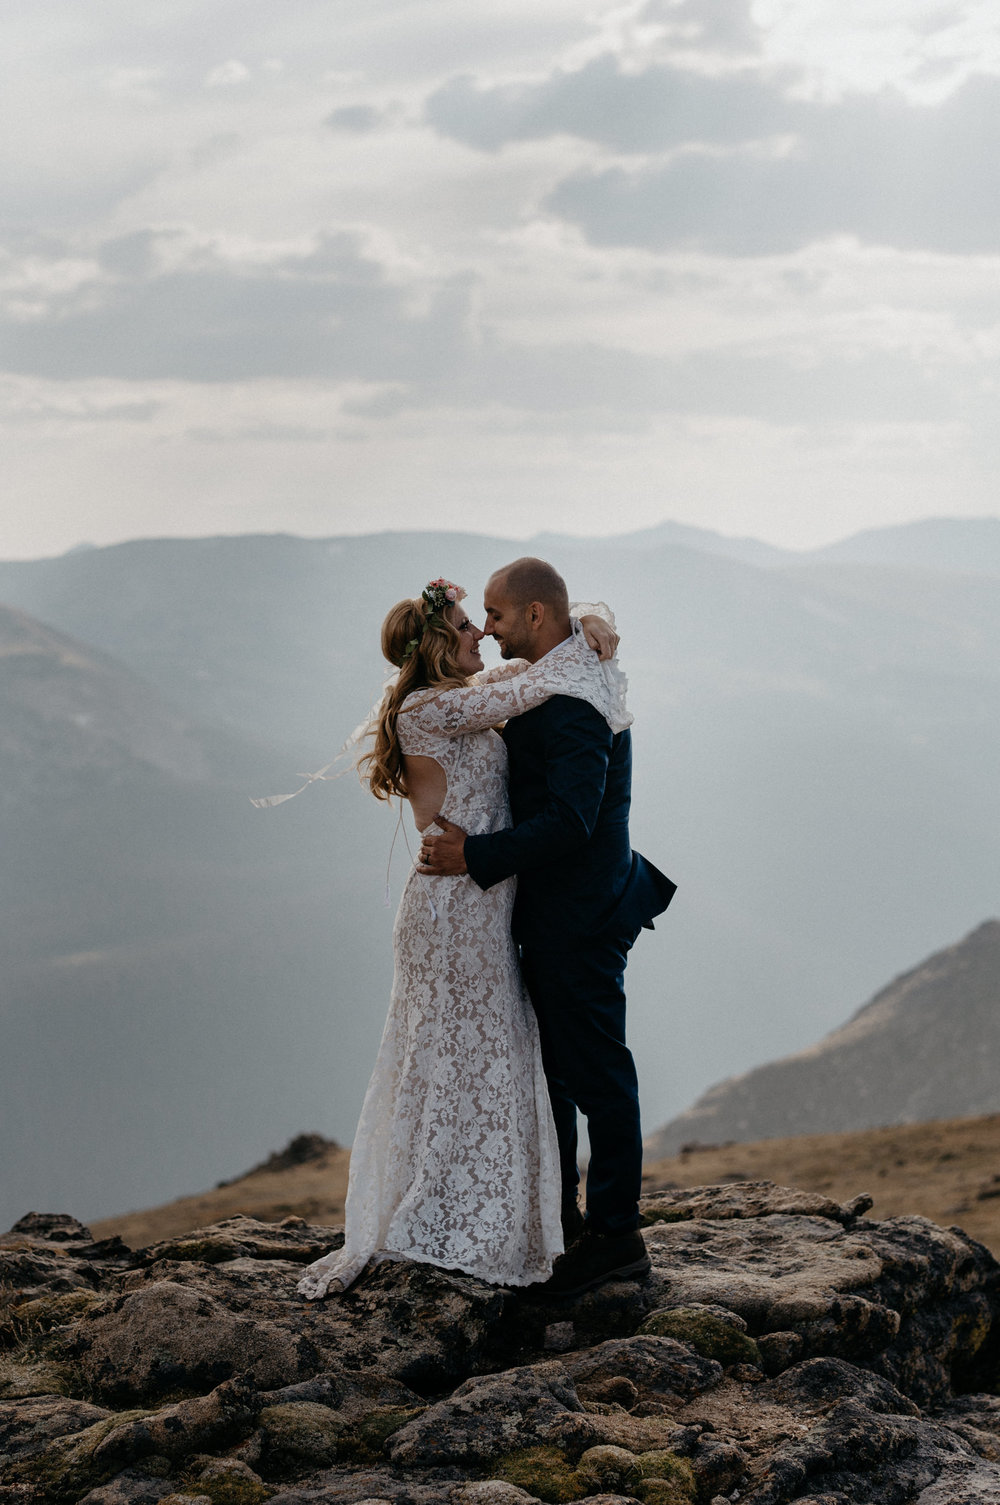 Colorado intimate wedding and elopement photography.